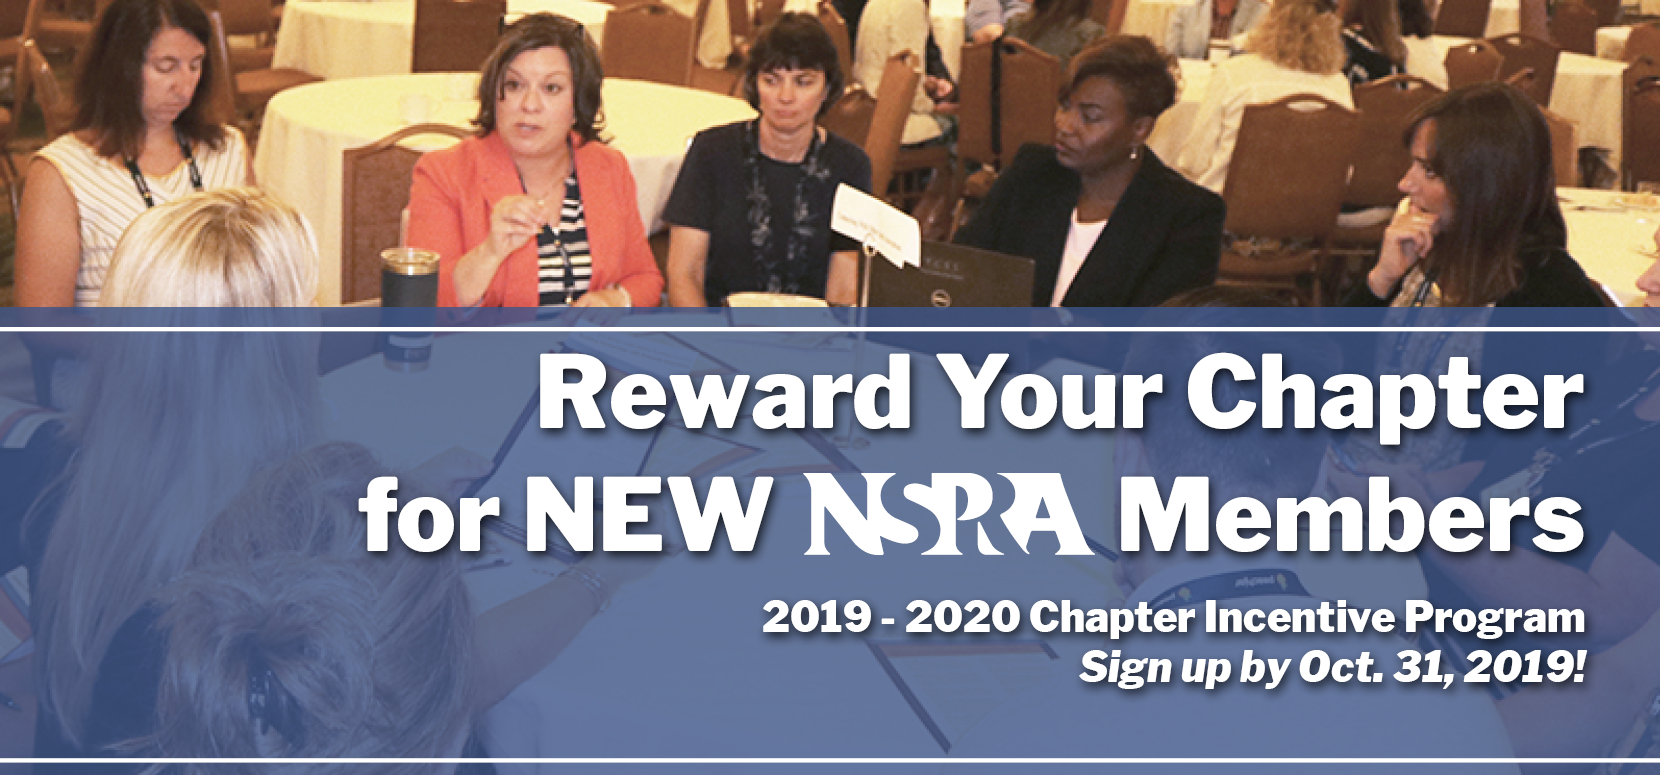 Reward Your Chapter for New NSPRA Members